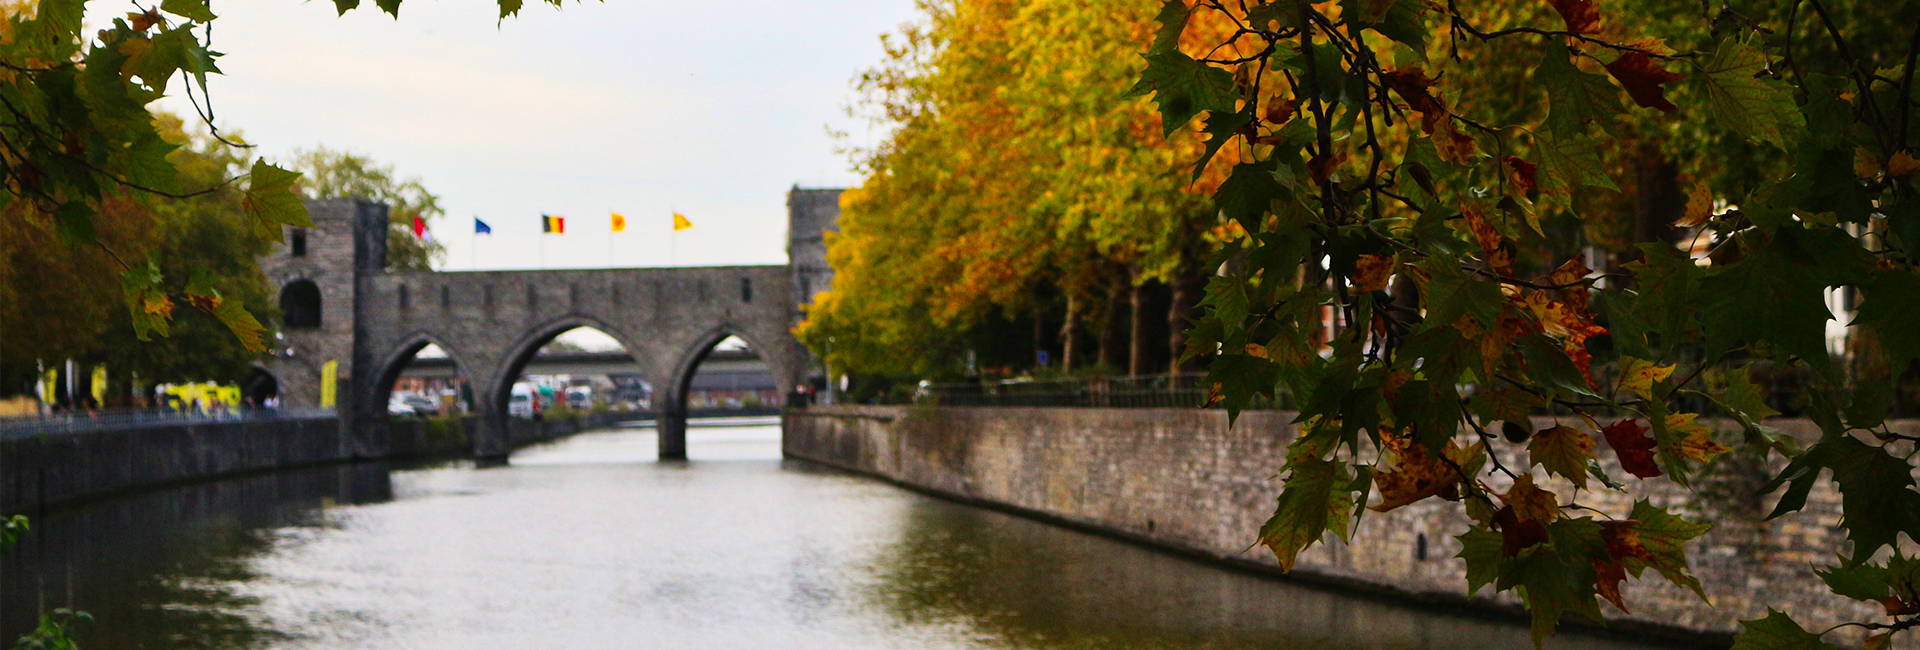 Pont des trous, Tournai by Coffee Lab Pics